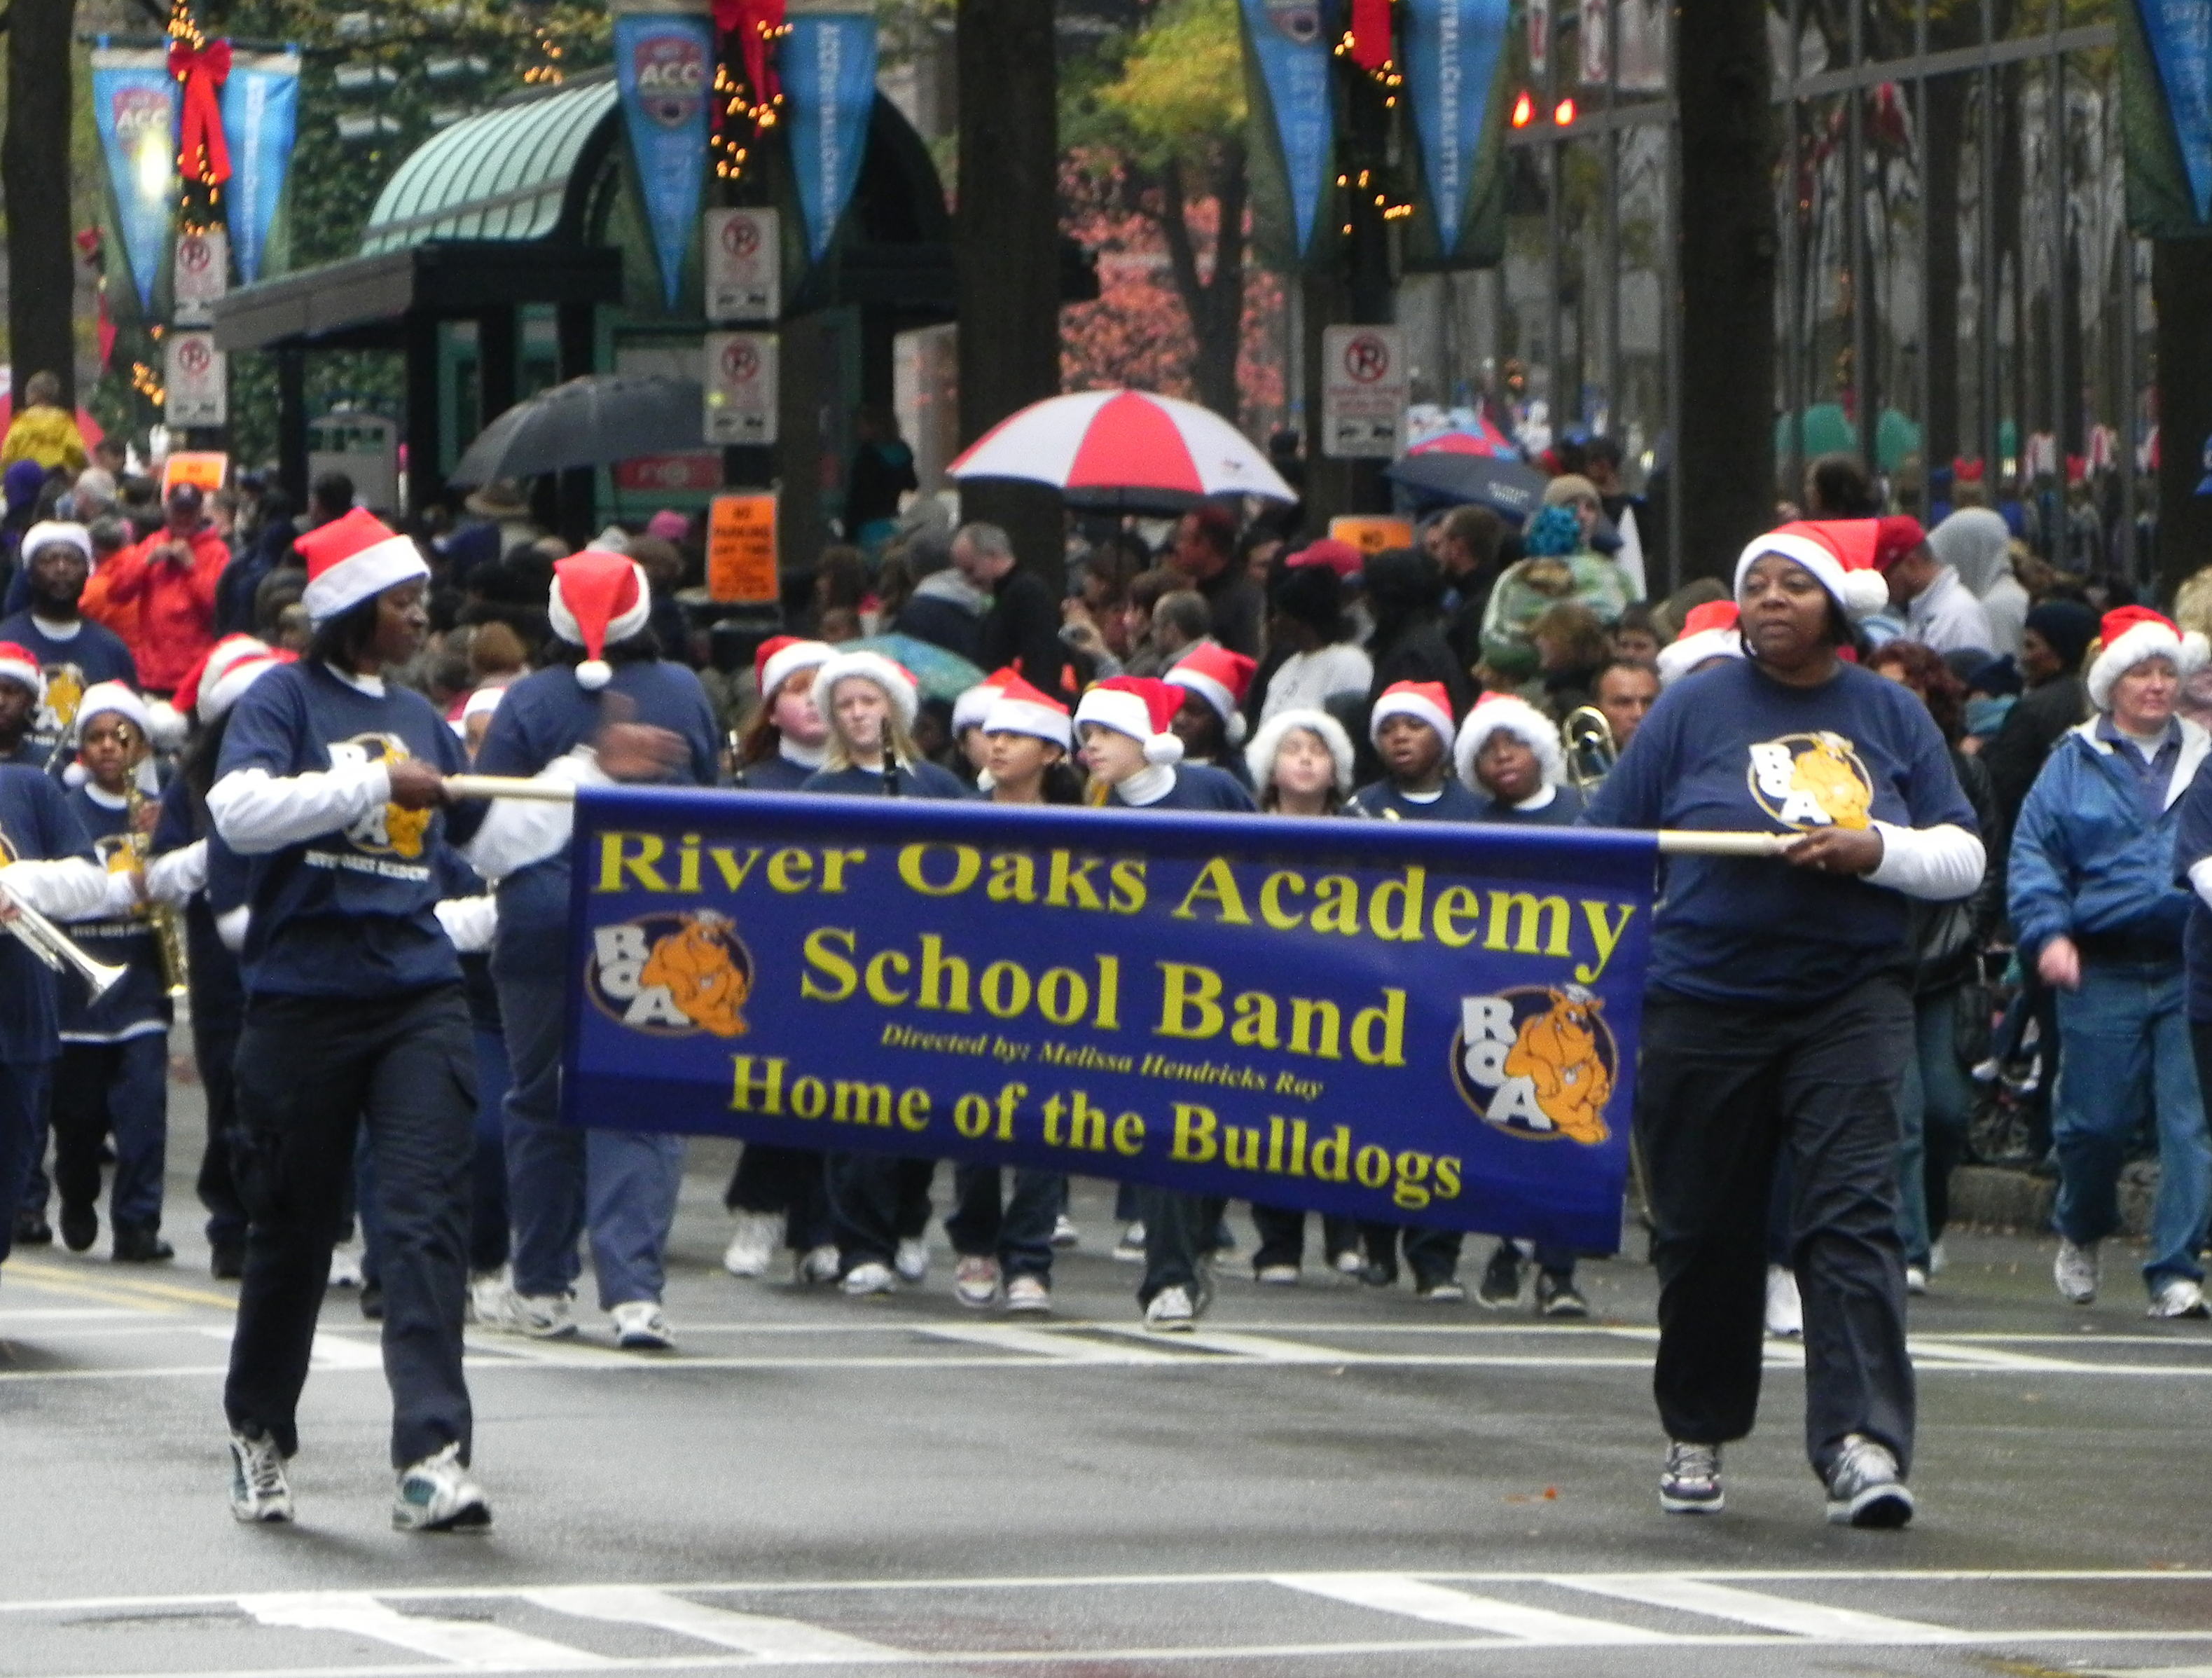 River Oaks Academy Band marches in Thanksgiving parade Uptown